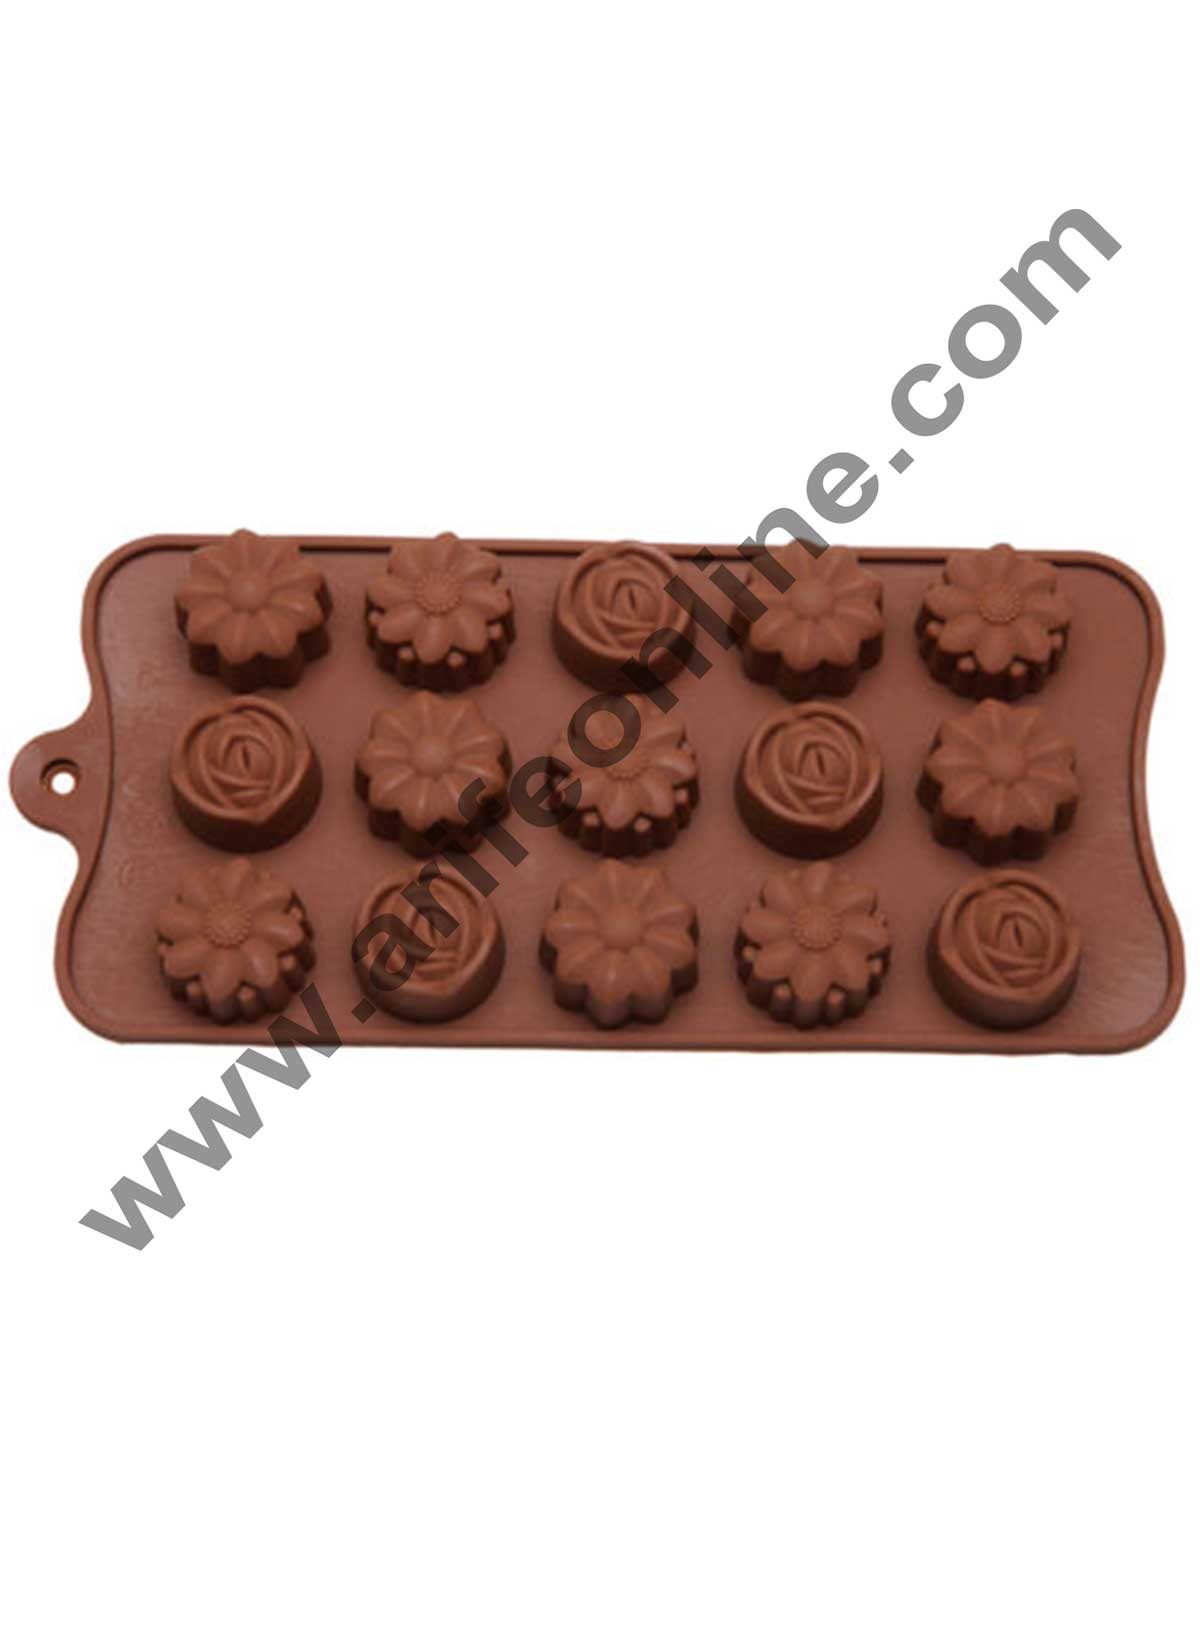 Cake Decor Silicon 15 Cavity Mix Flower Design Brown Chocolate Mould, Ice Mould, Chocolate Decorating Mould